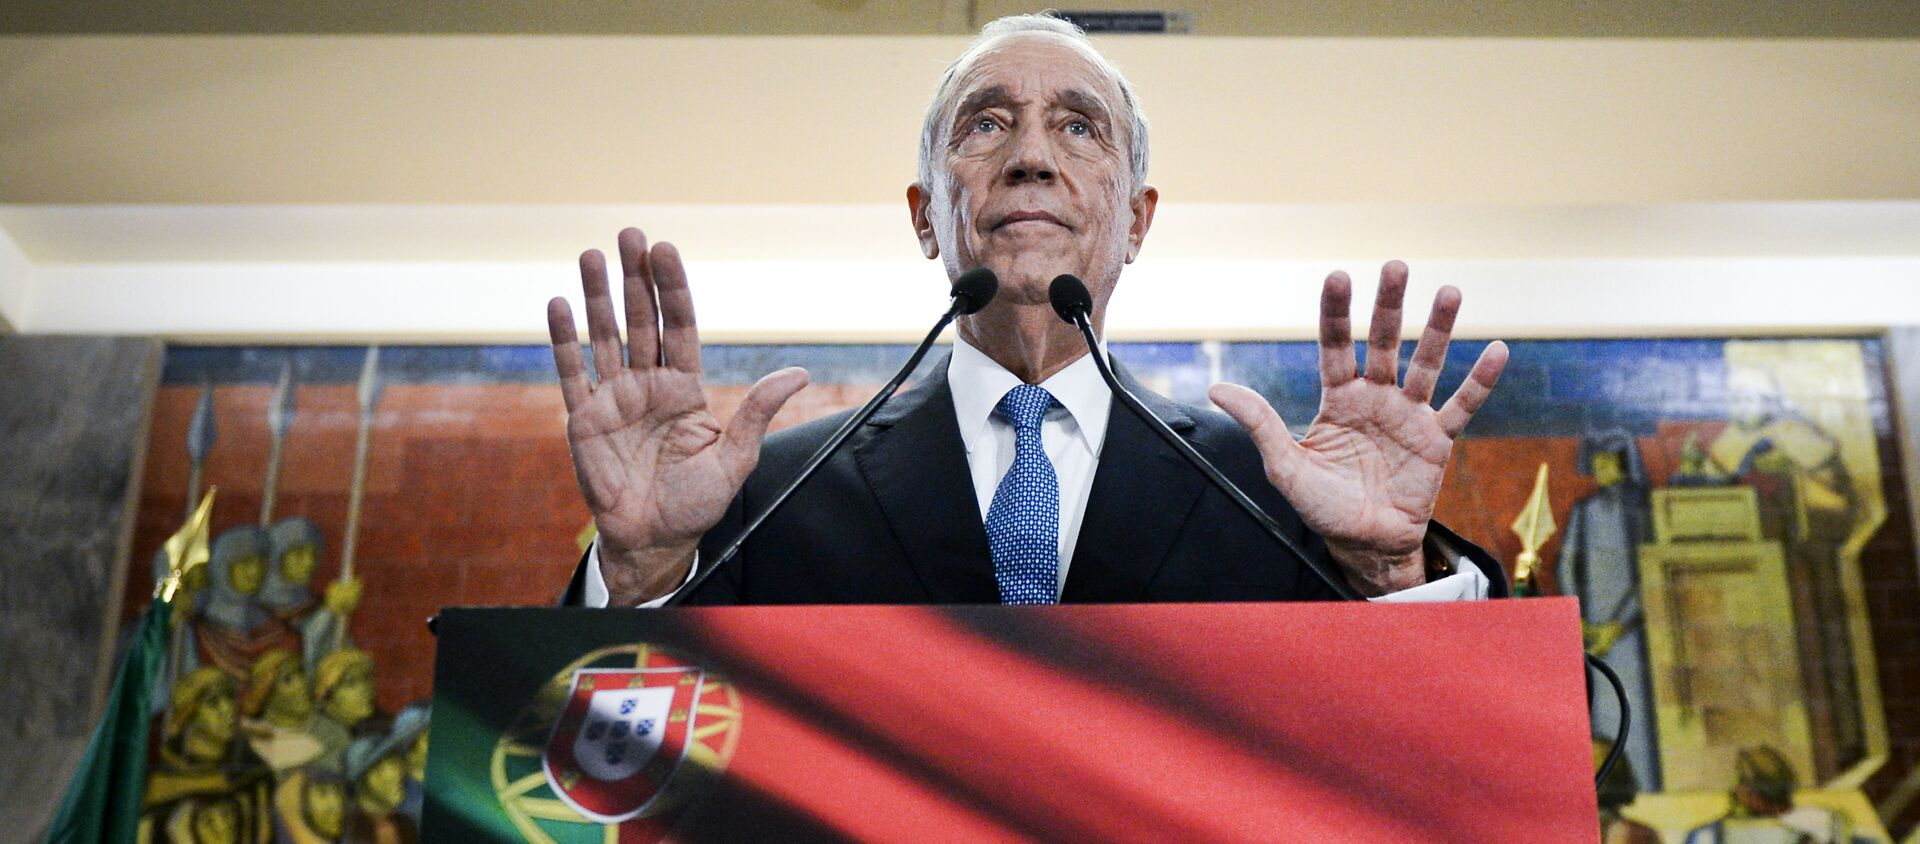 Marcelo Rebelo de Sousa gestures as he delivers a speech after winning the Portugal's Presidencial Election in Lisbon on January 24, 2016 - Sputnik Italia, 1920, 25.01.2021